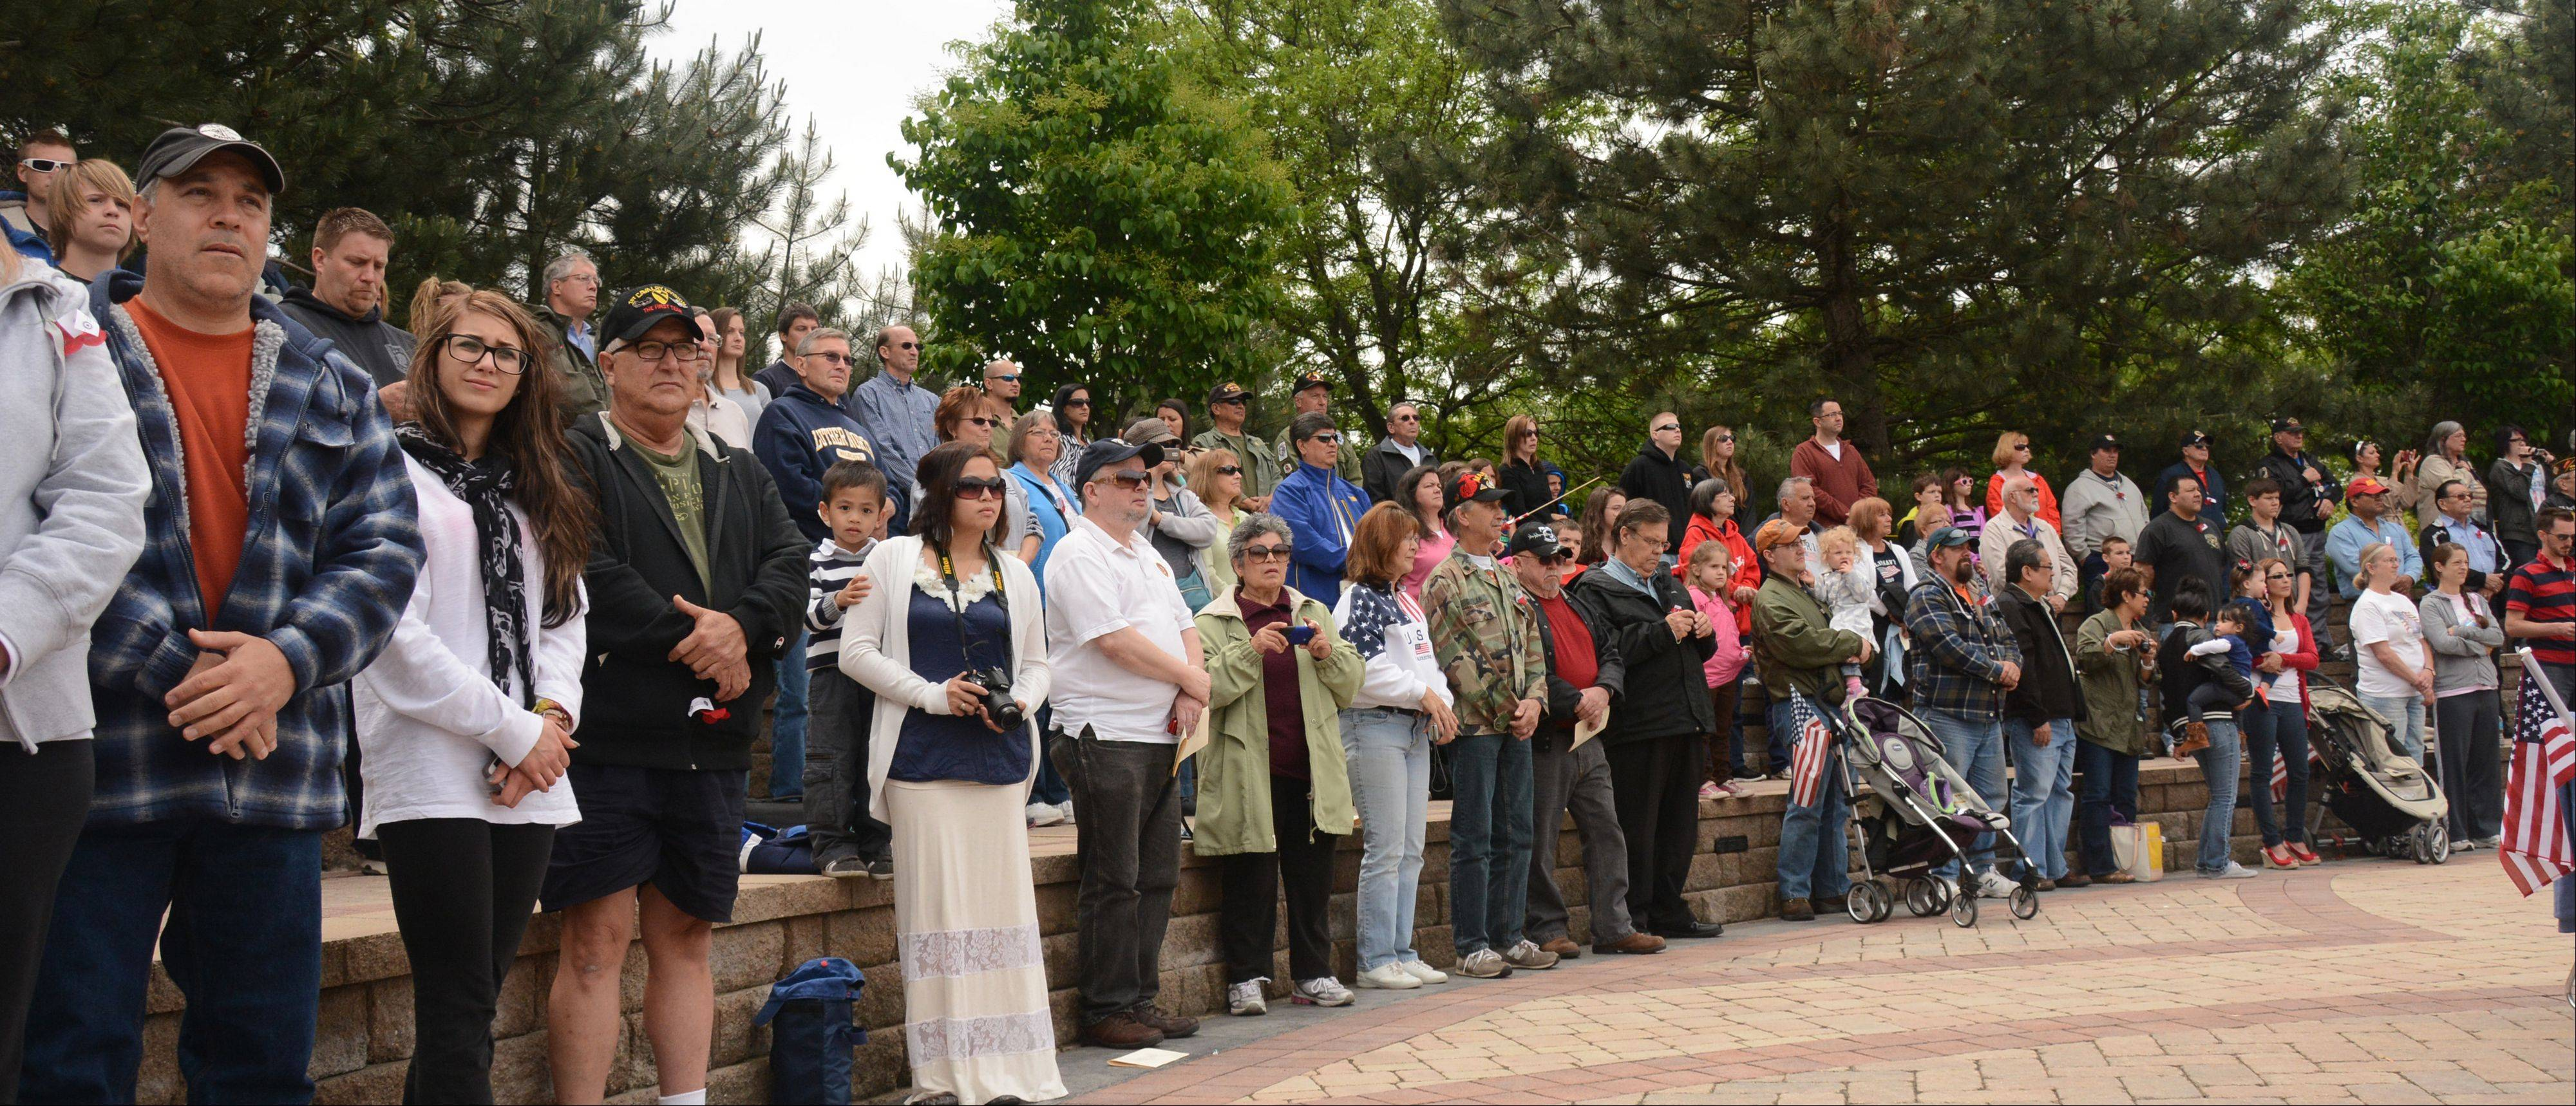 A large crowd silently watches the Streamwood Memorial Day ceremony Sunday. The ceremony included speeches, flag presentations, a moment of silence, a 21-gun salute, the playing of Taps, and the placement of wreaths at the memorial's monoliths.